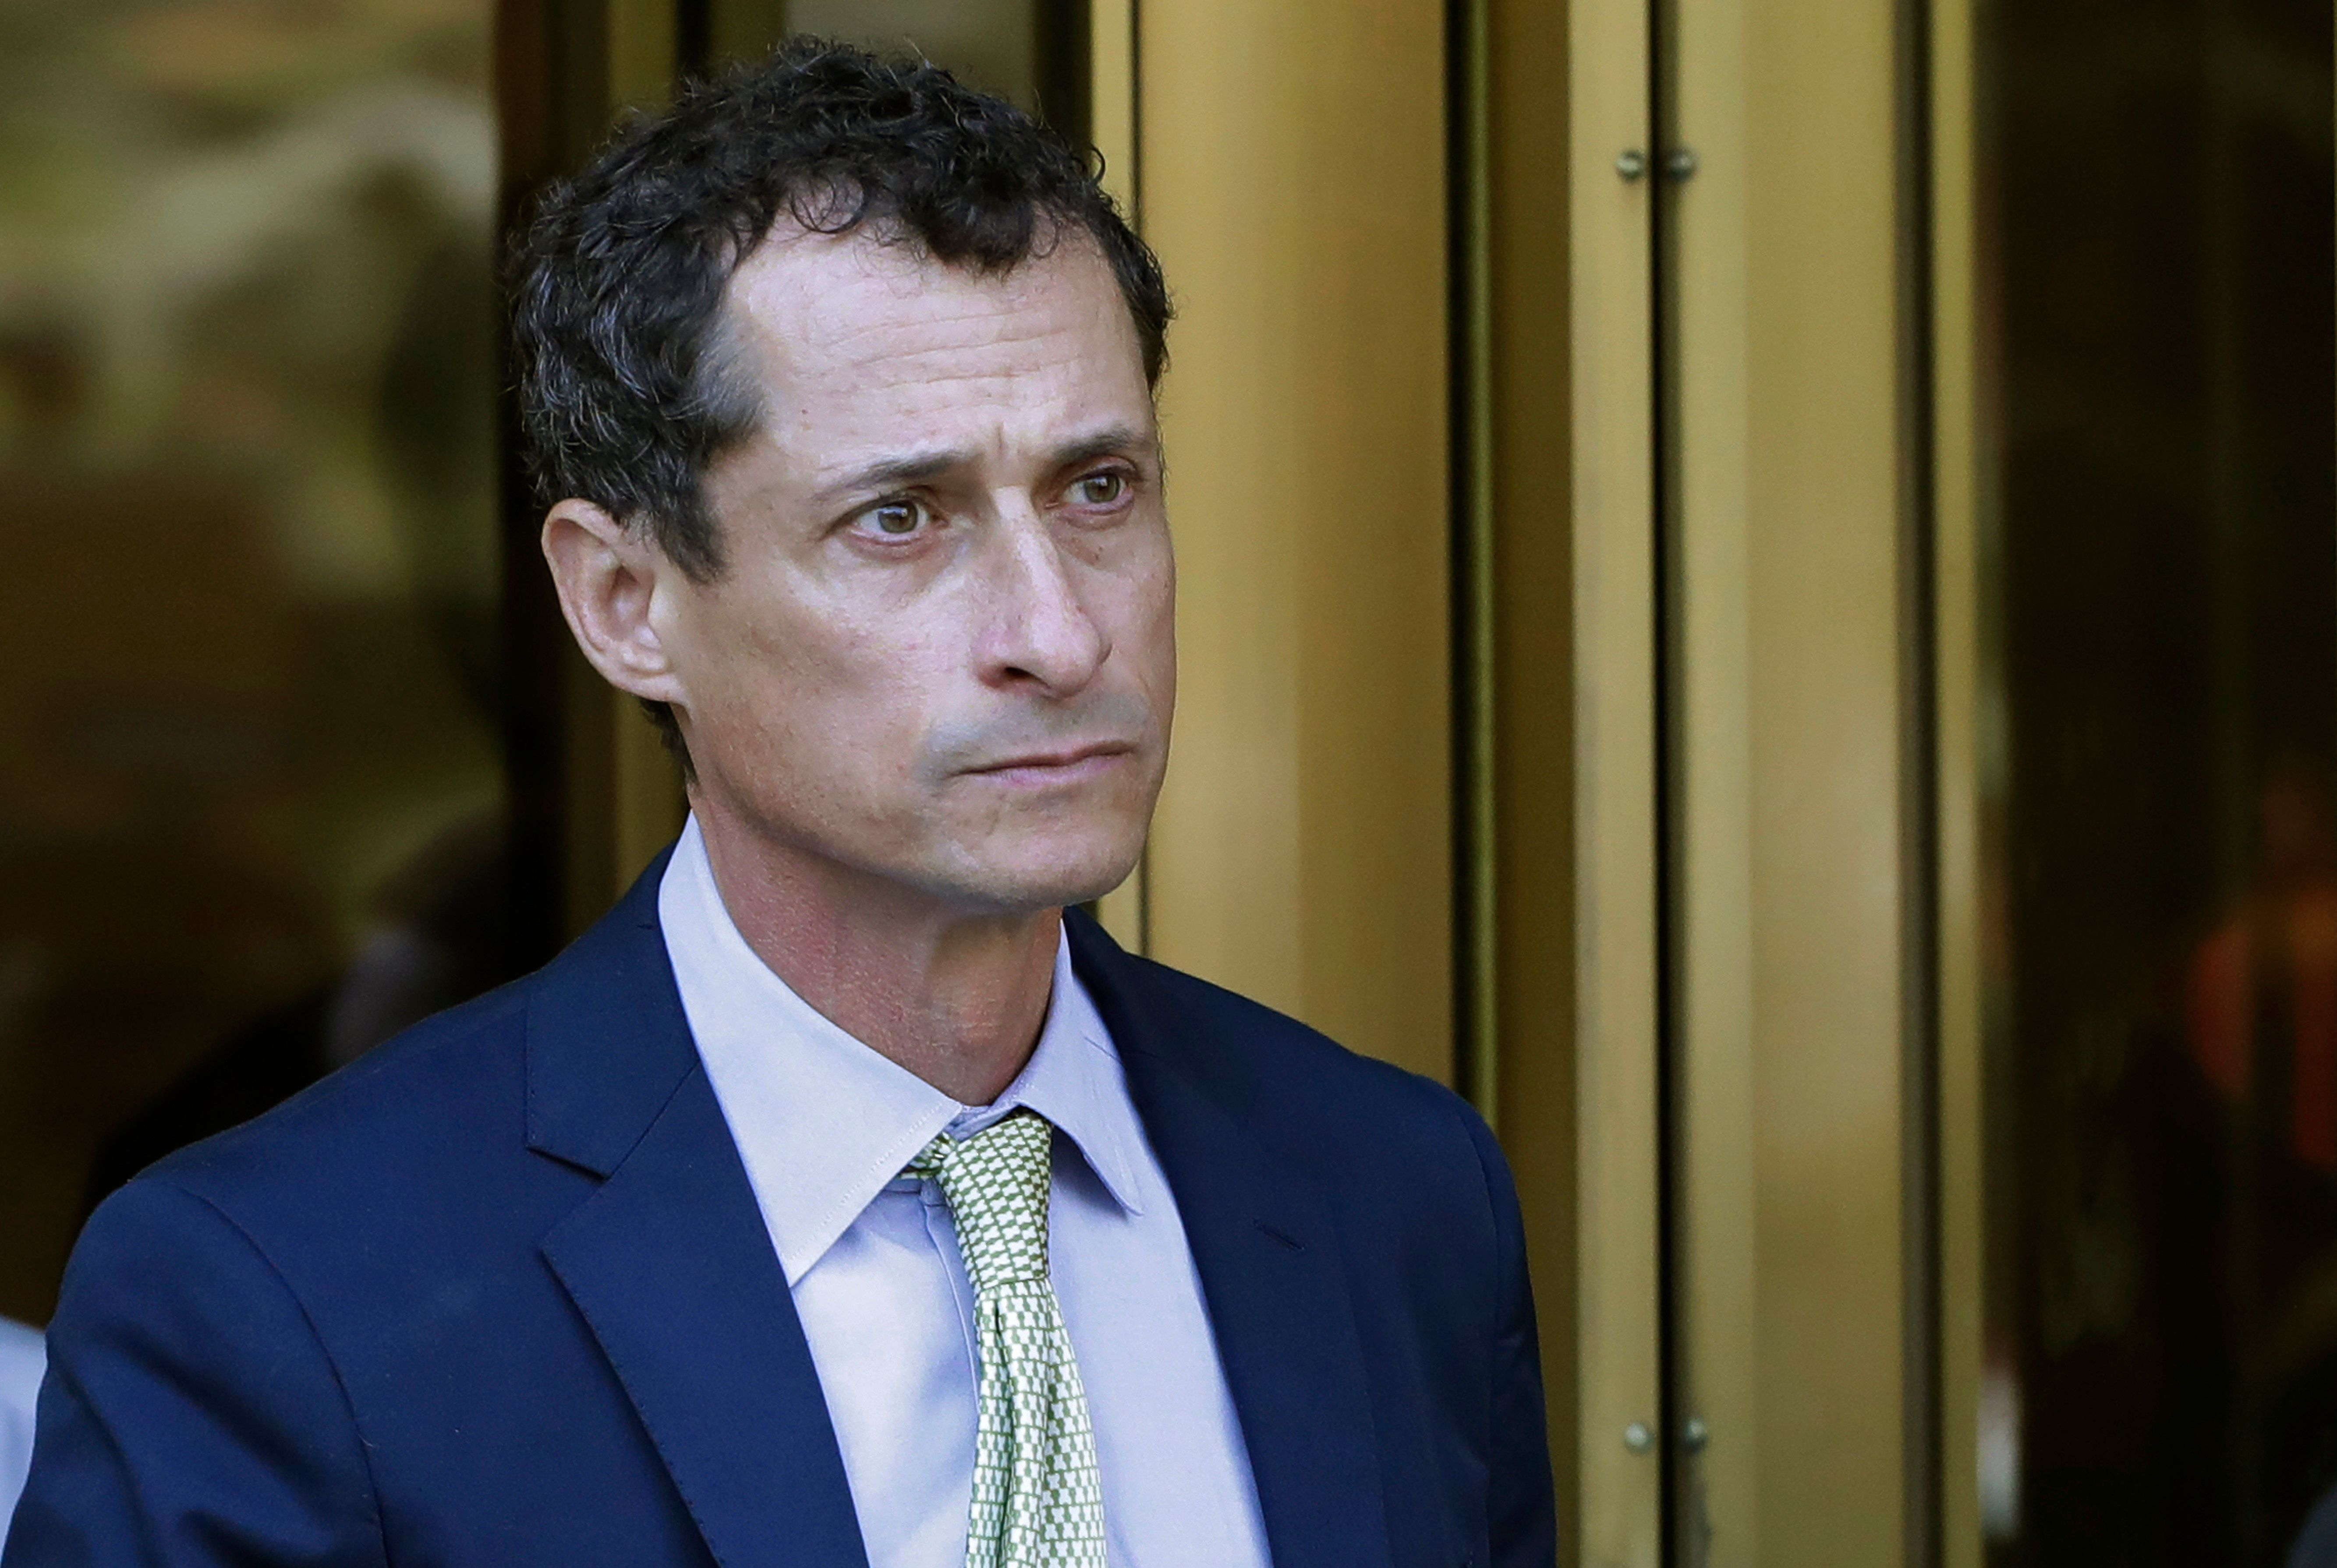 Former Congressman Anthony Weiner leaves federal court following his sentencing, Monday, Sept. 25, 2017, in New York. Weiner was sentenced to 21 months in a sexting case that rocked the presidential race. (AP Photo/Mark Lennihan)